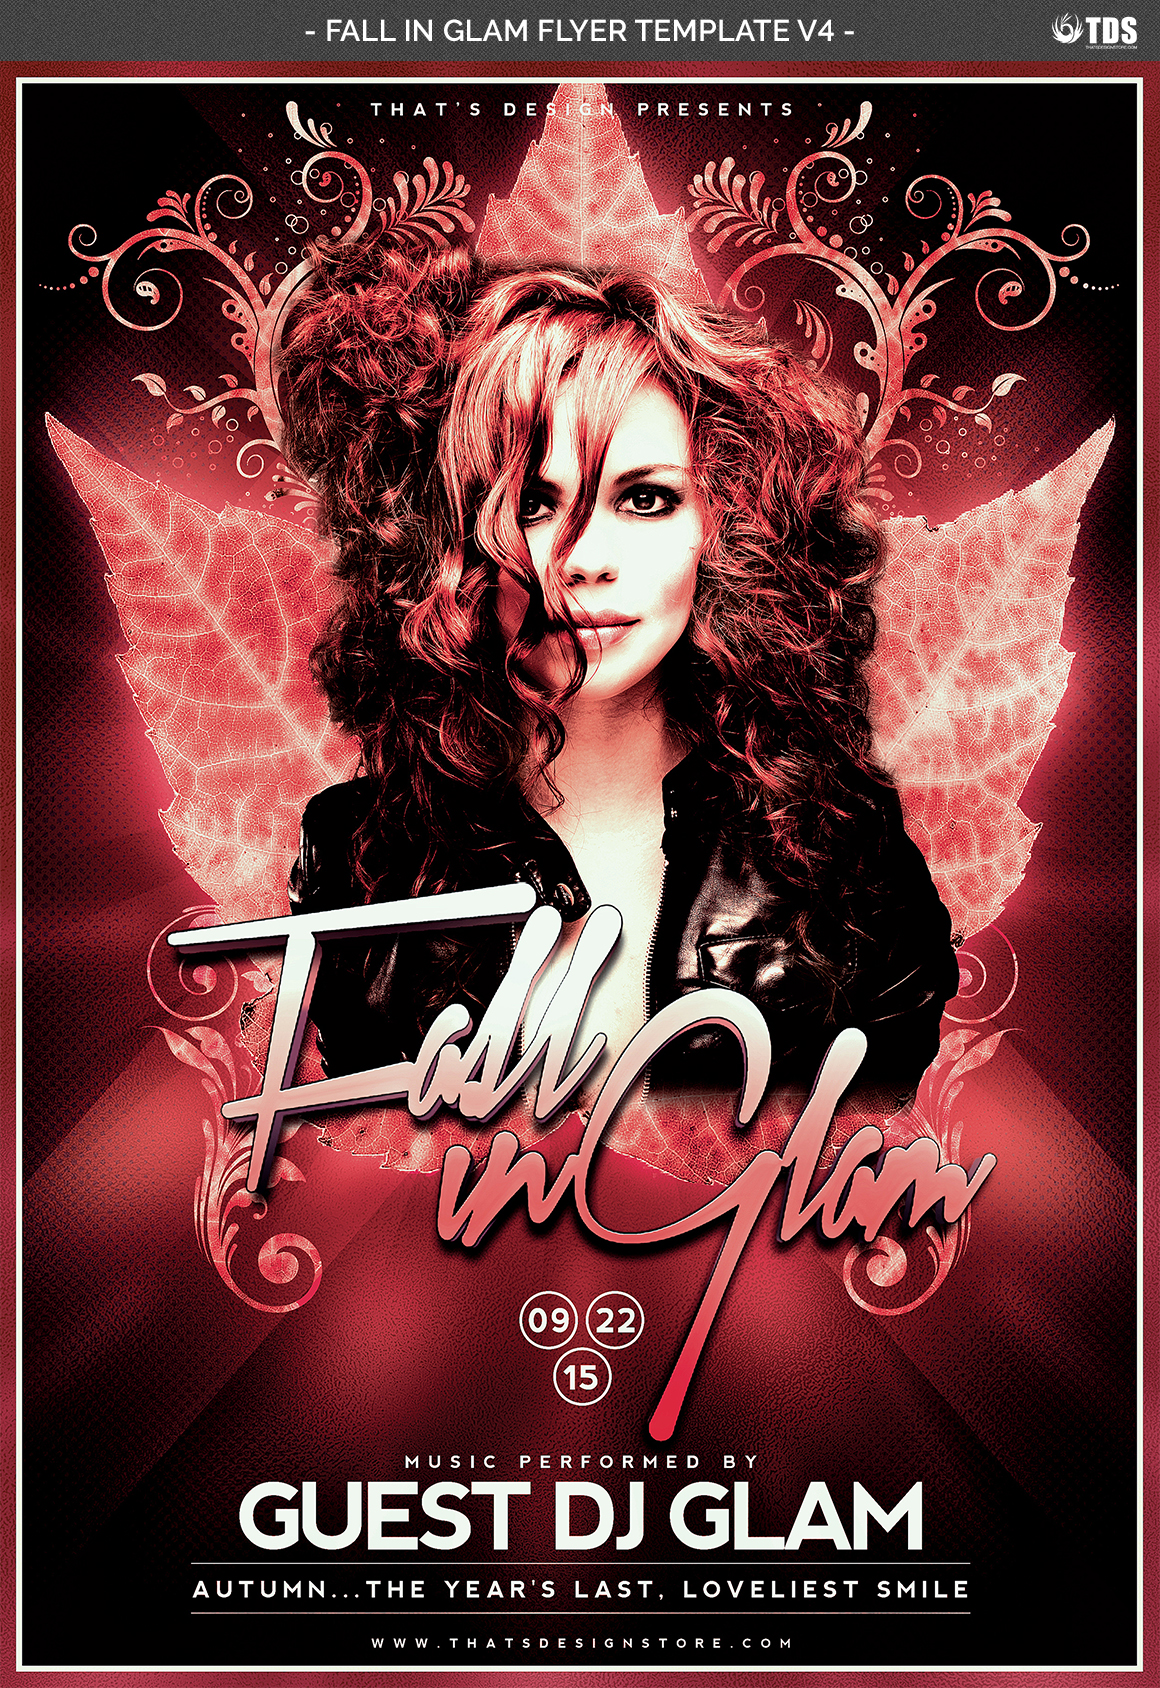 Fall in Glam Flyer Template V4 example image 7